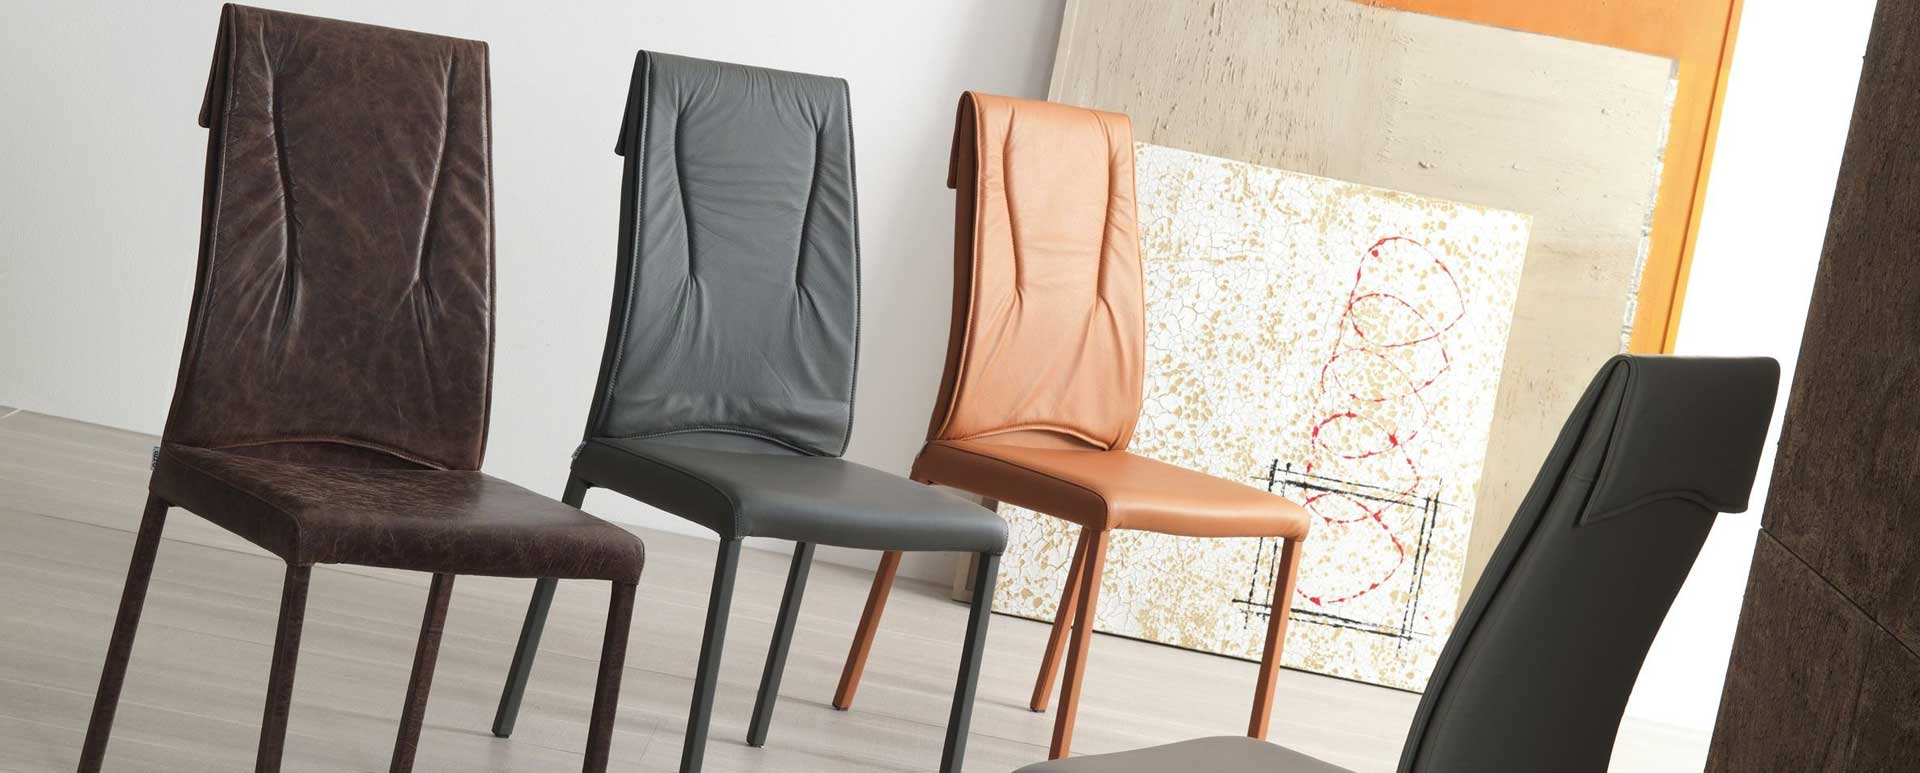 Easy Line Chairs Lebanon